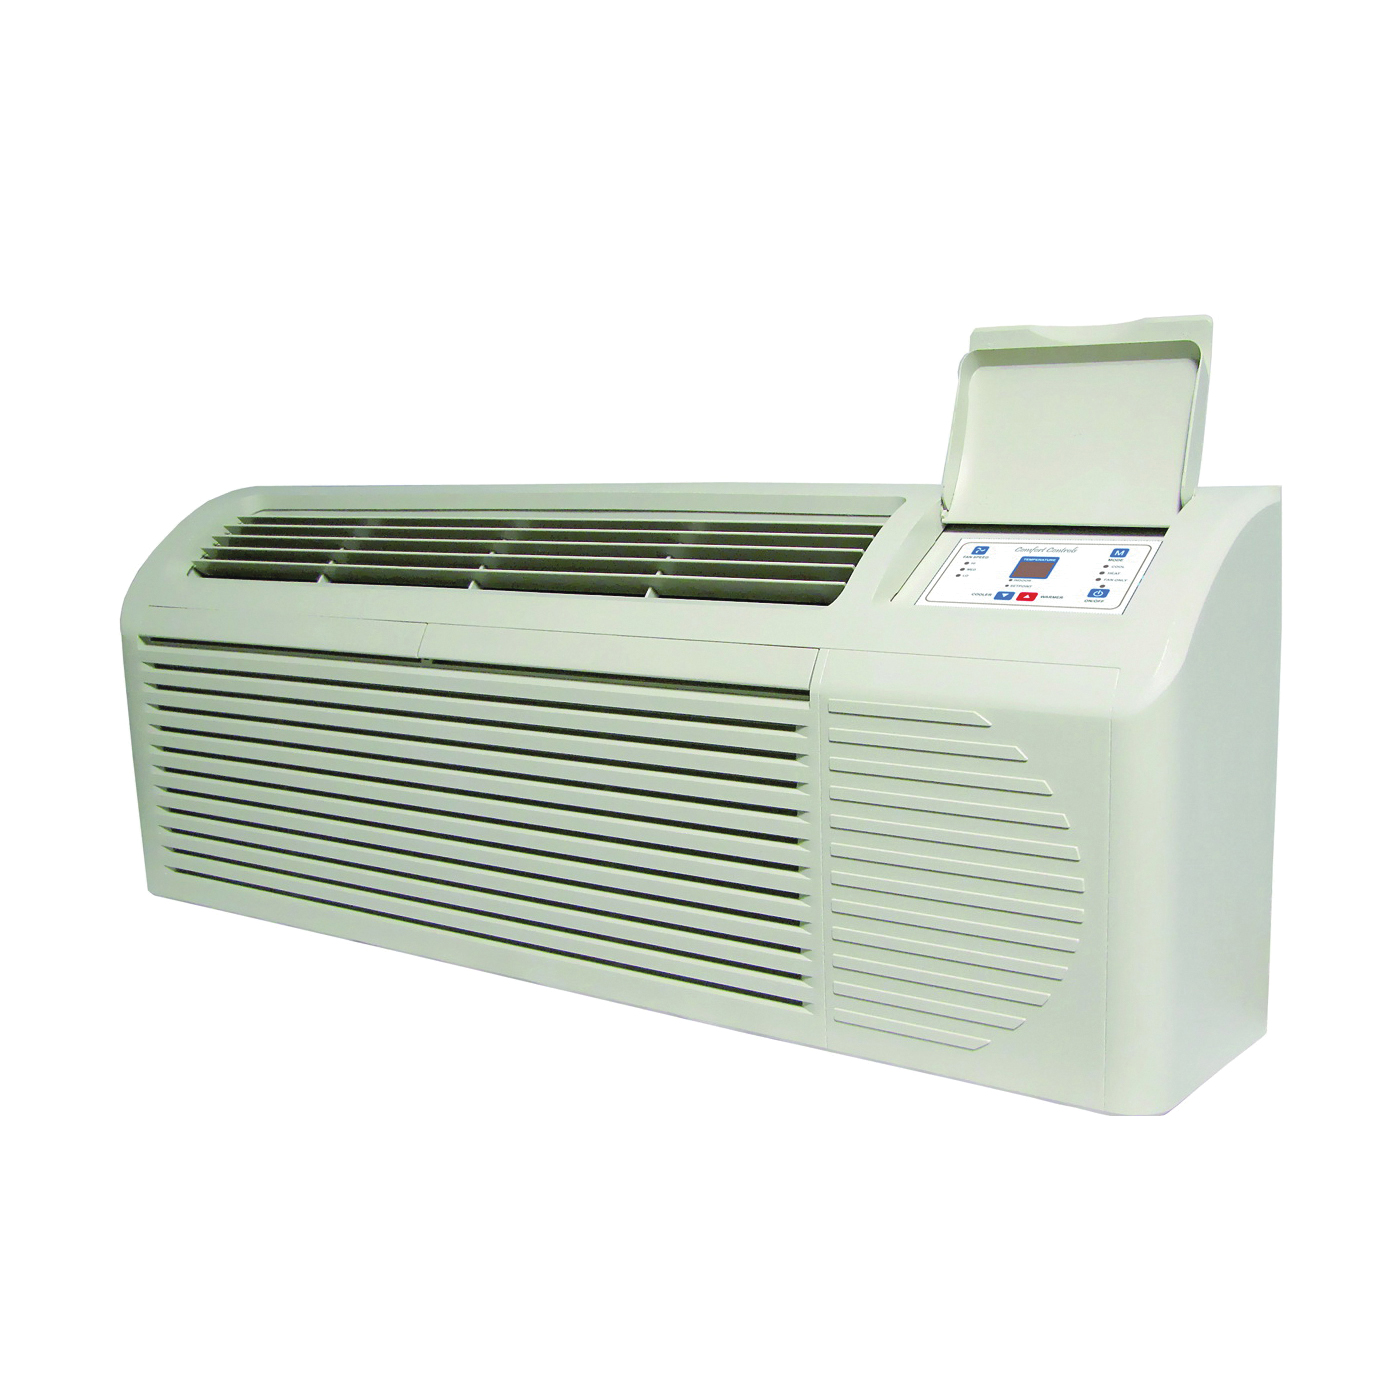 Picture of Comfort-Aire PTAC Series EKTC12-1G-3-KIT Air Conditioner Kit, 208/230 V, 12,000 Btu Cooling, 10,700 Btu/hr Heating